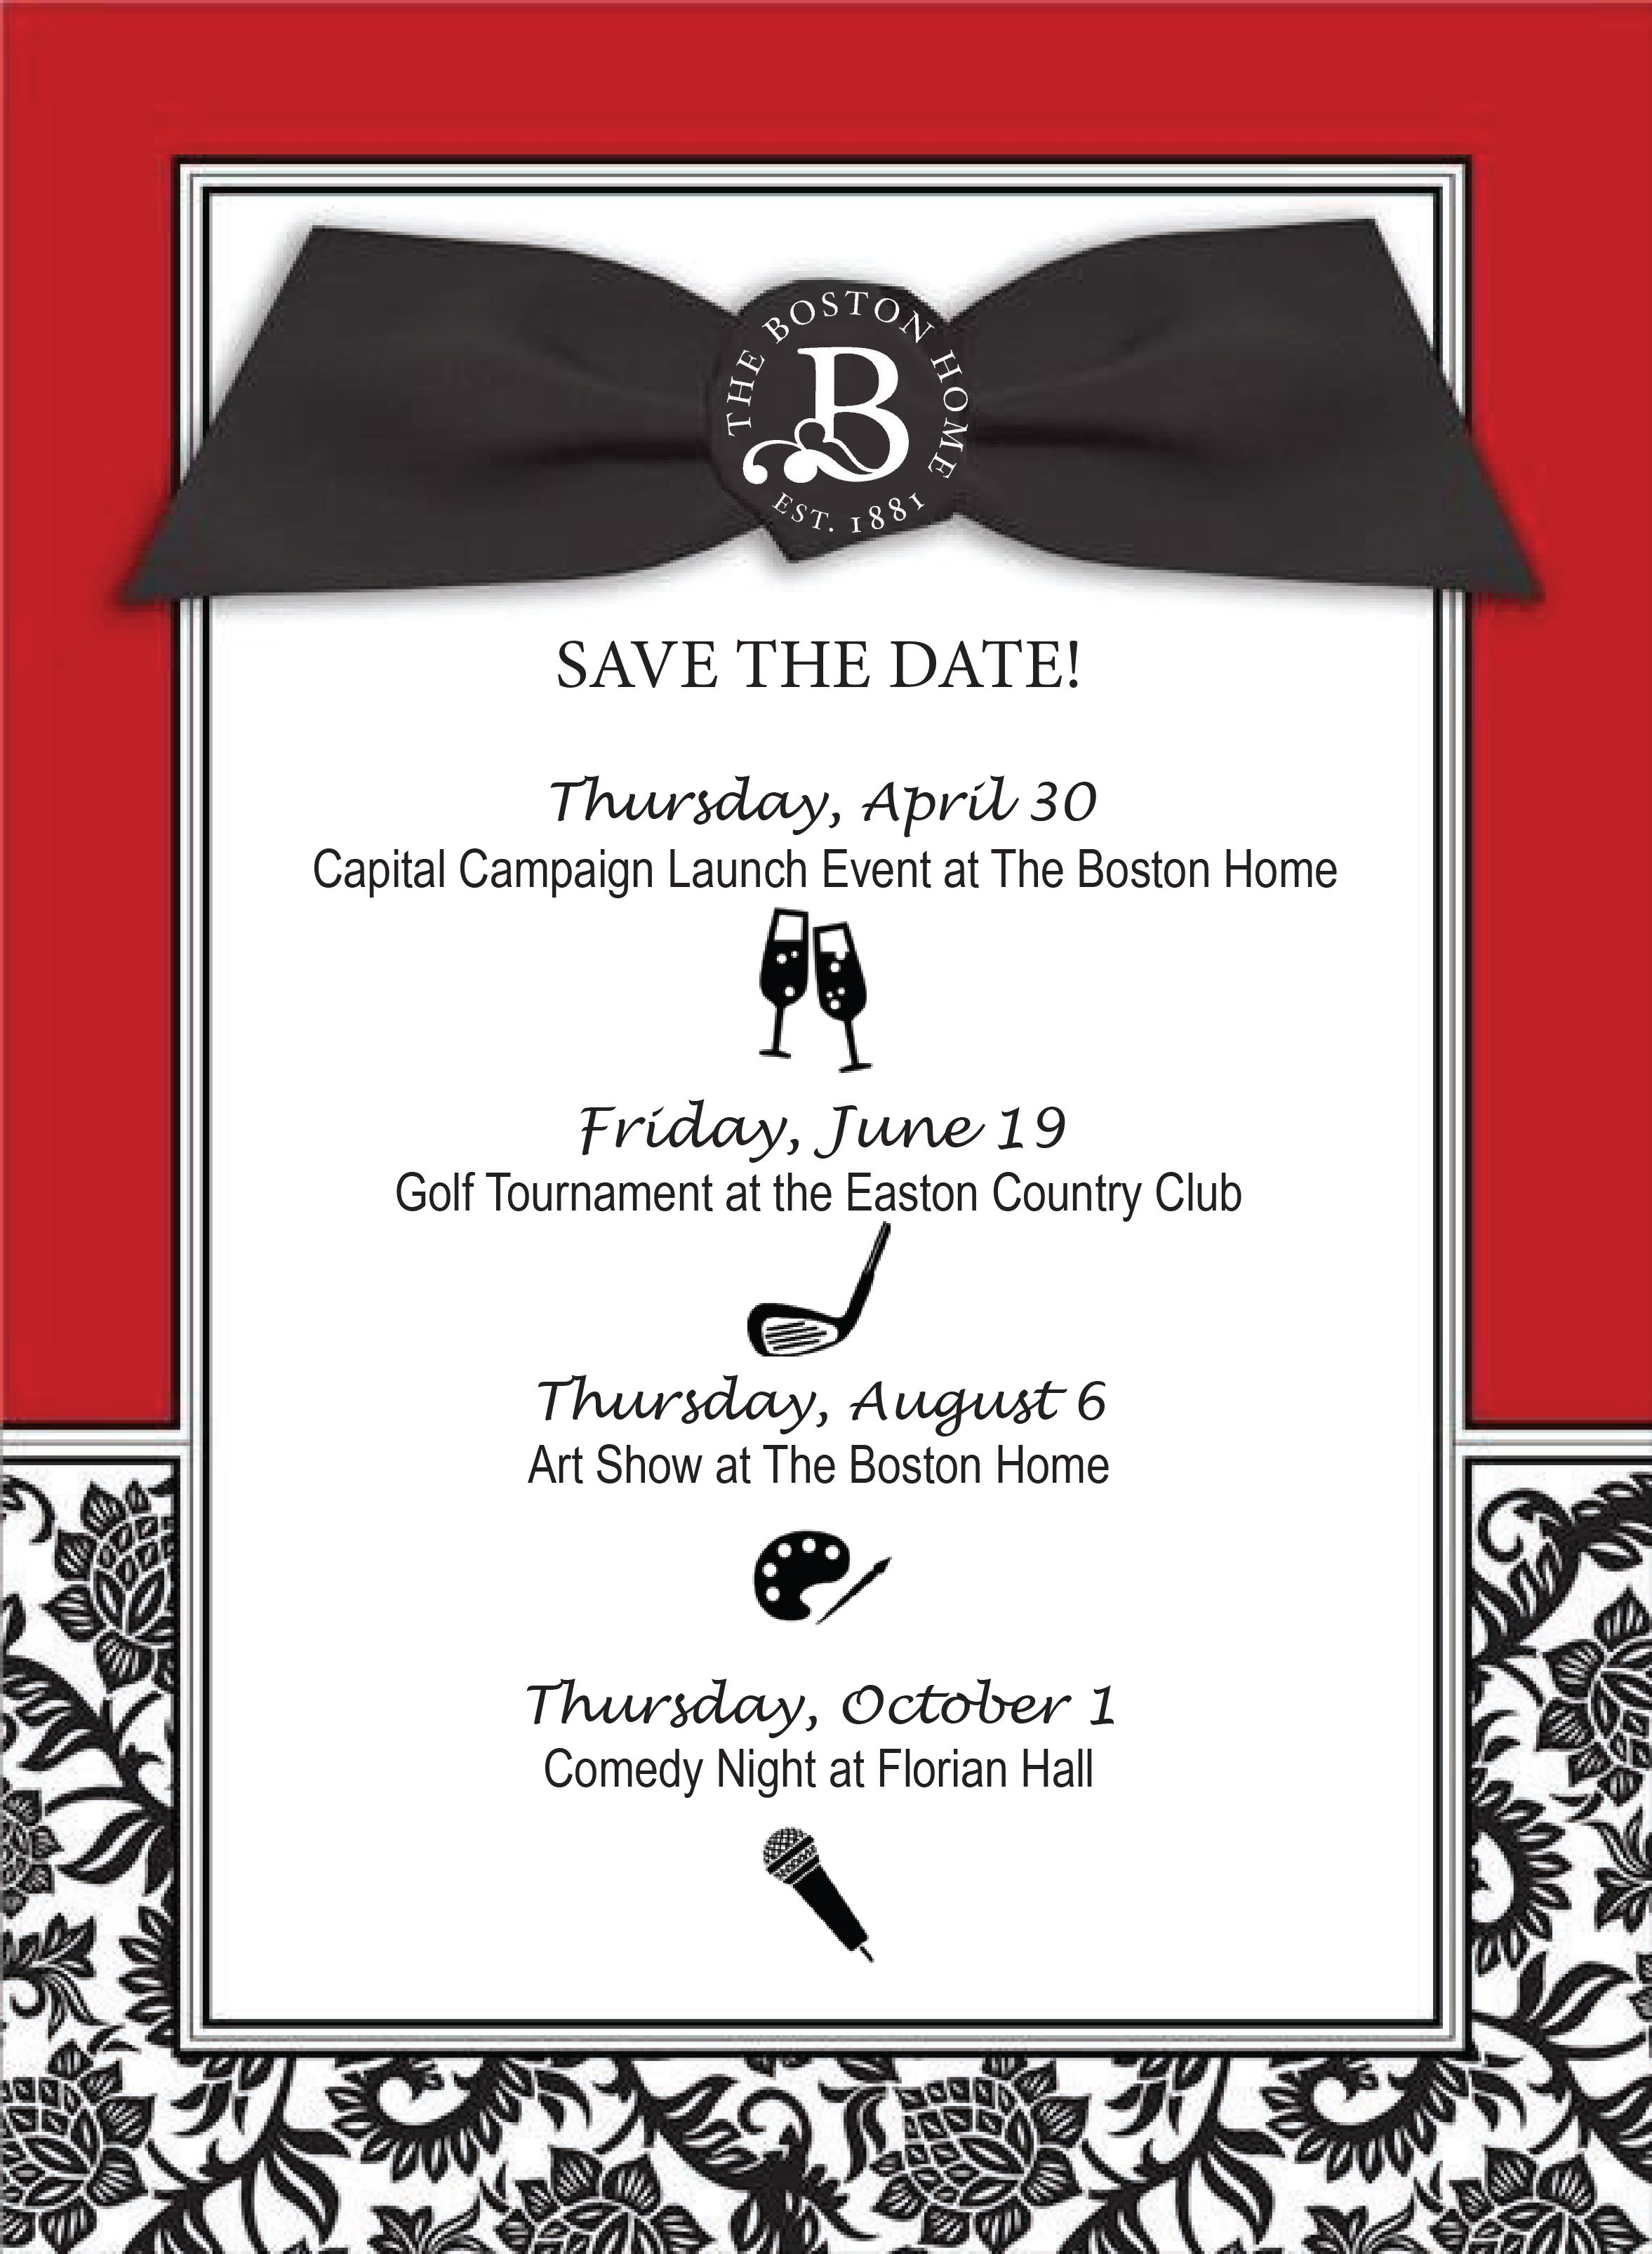 Save The Date!  Events you don't want to miss!